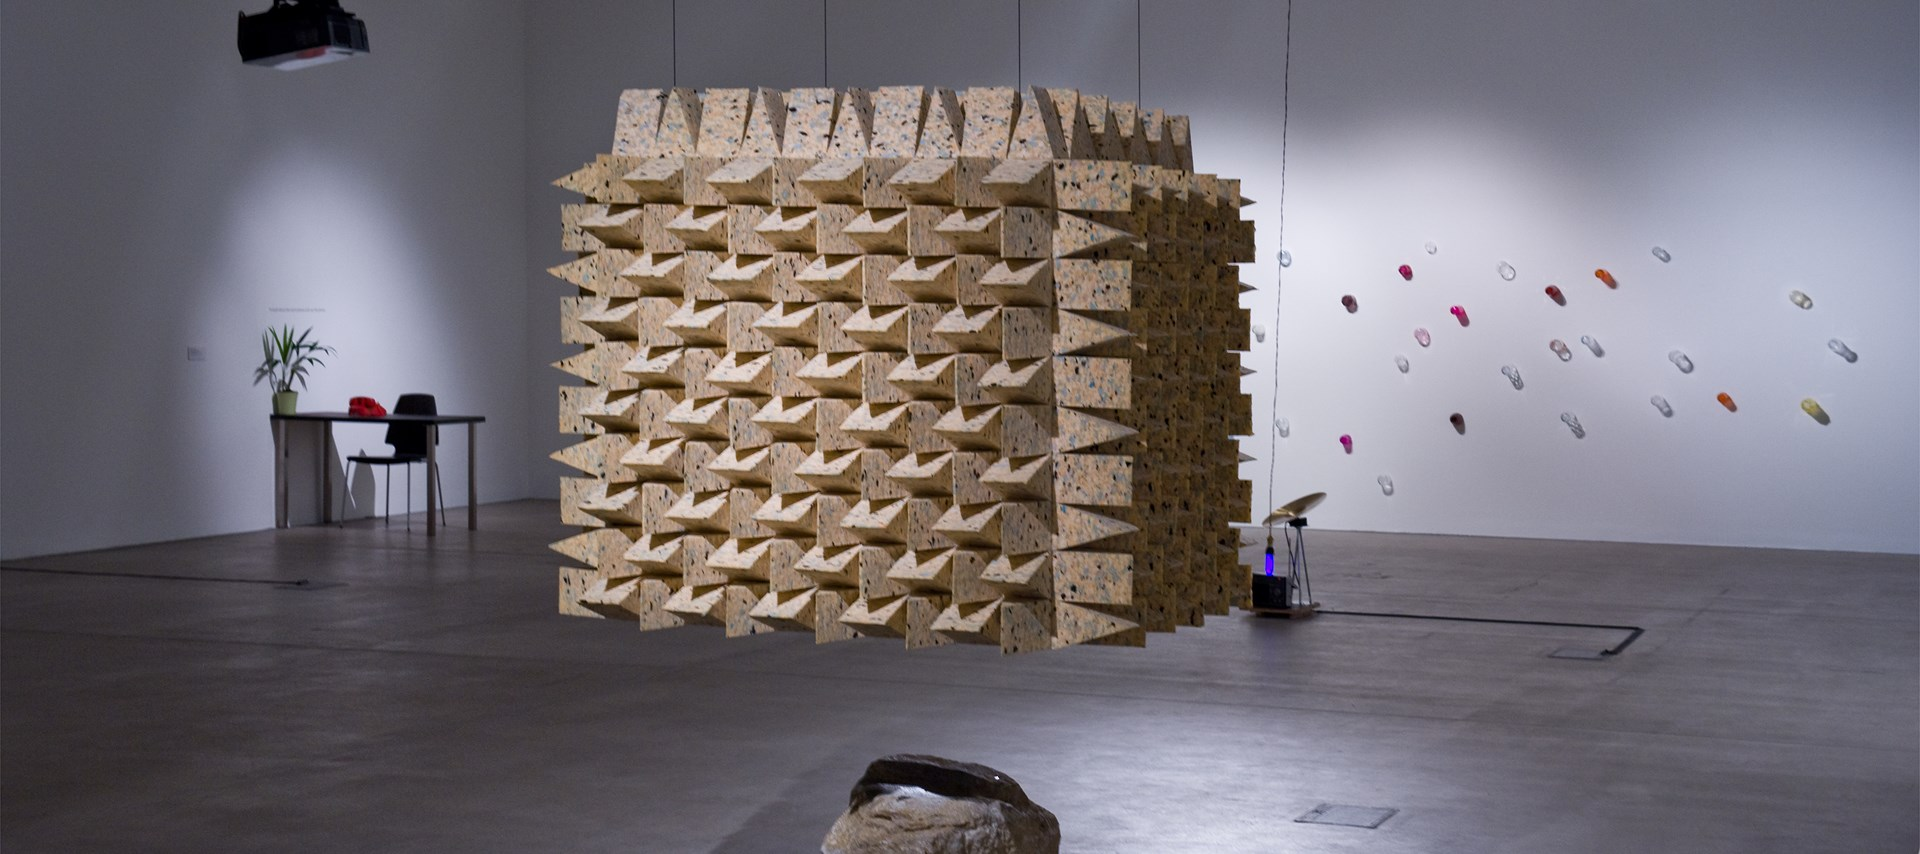 Listening: Curated by Sam Belinfante. Image credit: Colin Davison